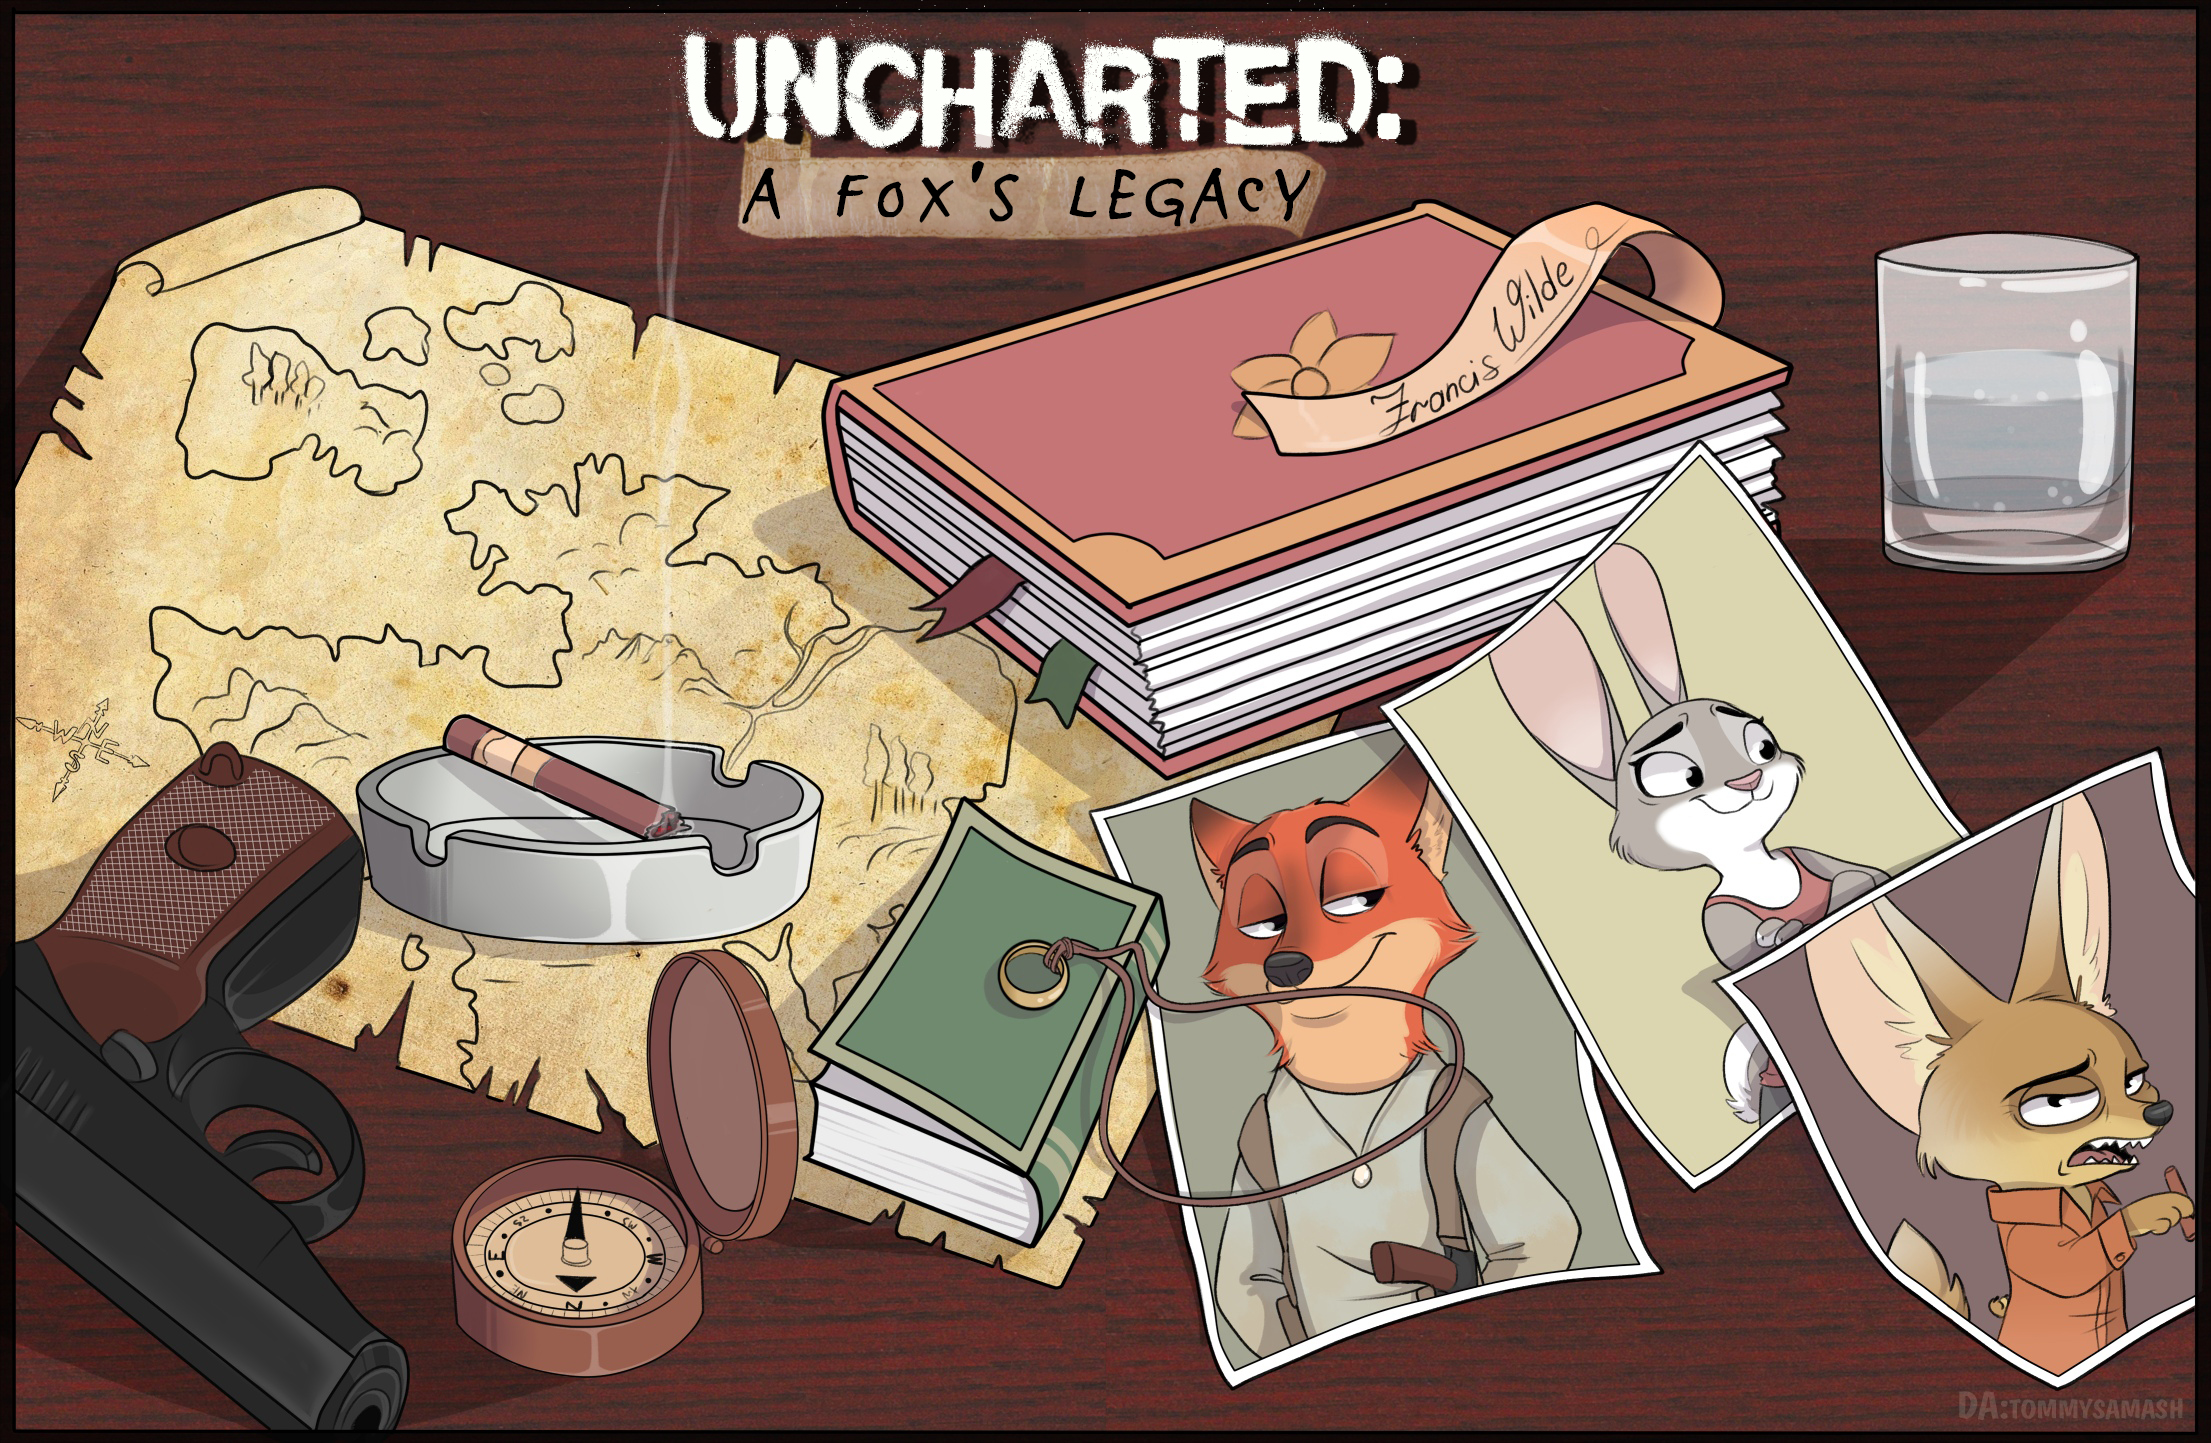 Uncharted A Fox's Legacy